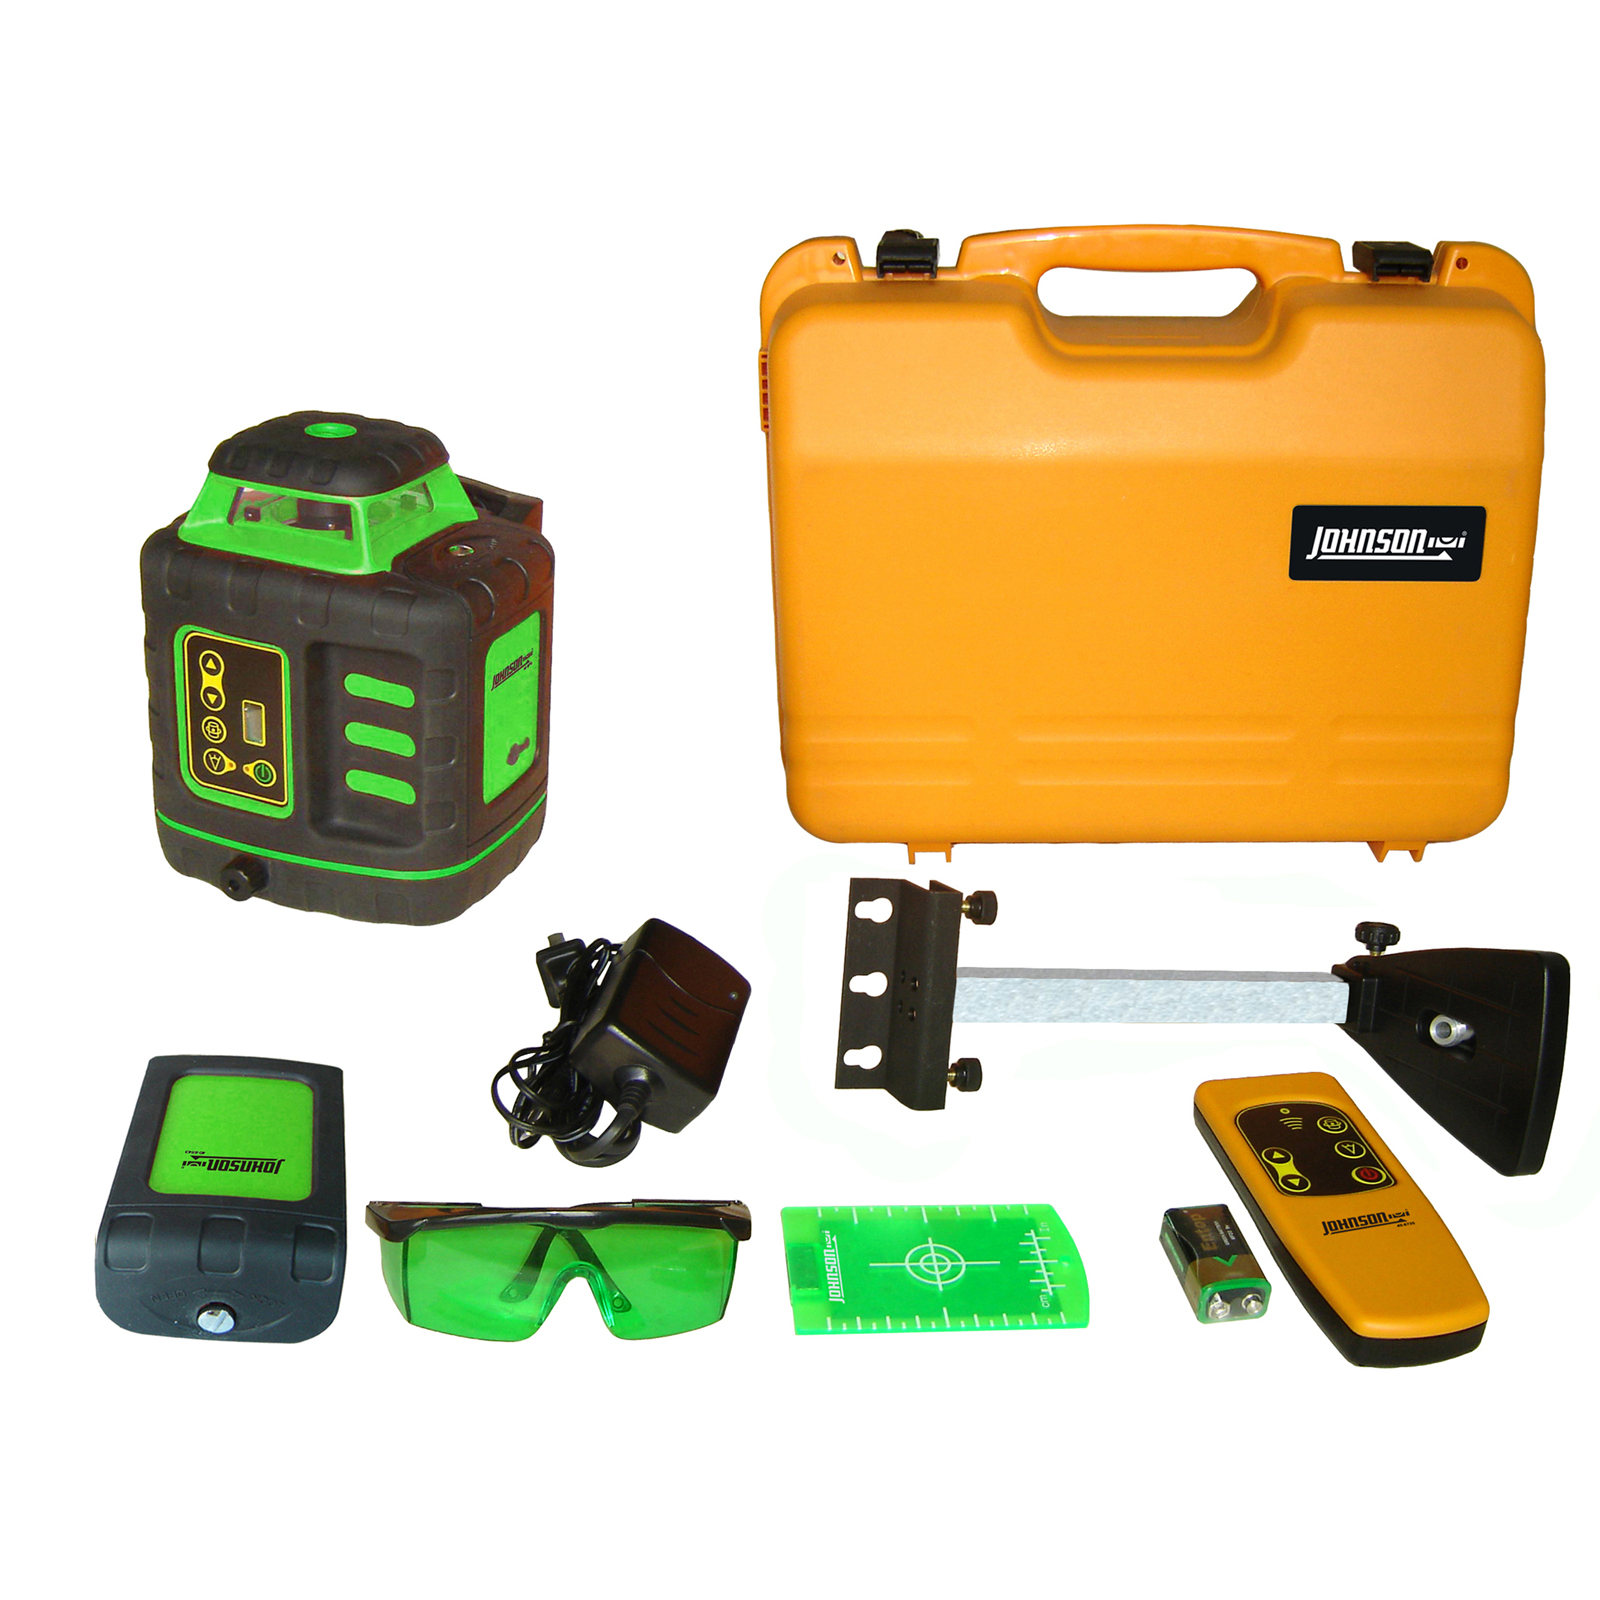 Johnson Level Self­Leveling Rotary Laser Kit with GreenBrite Technology